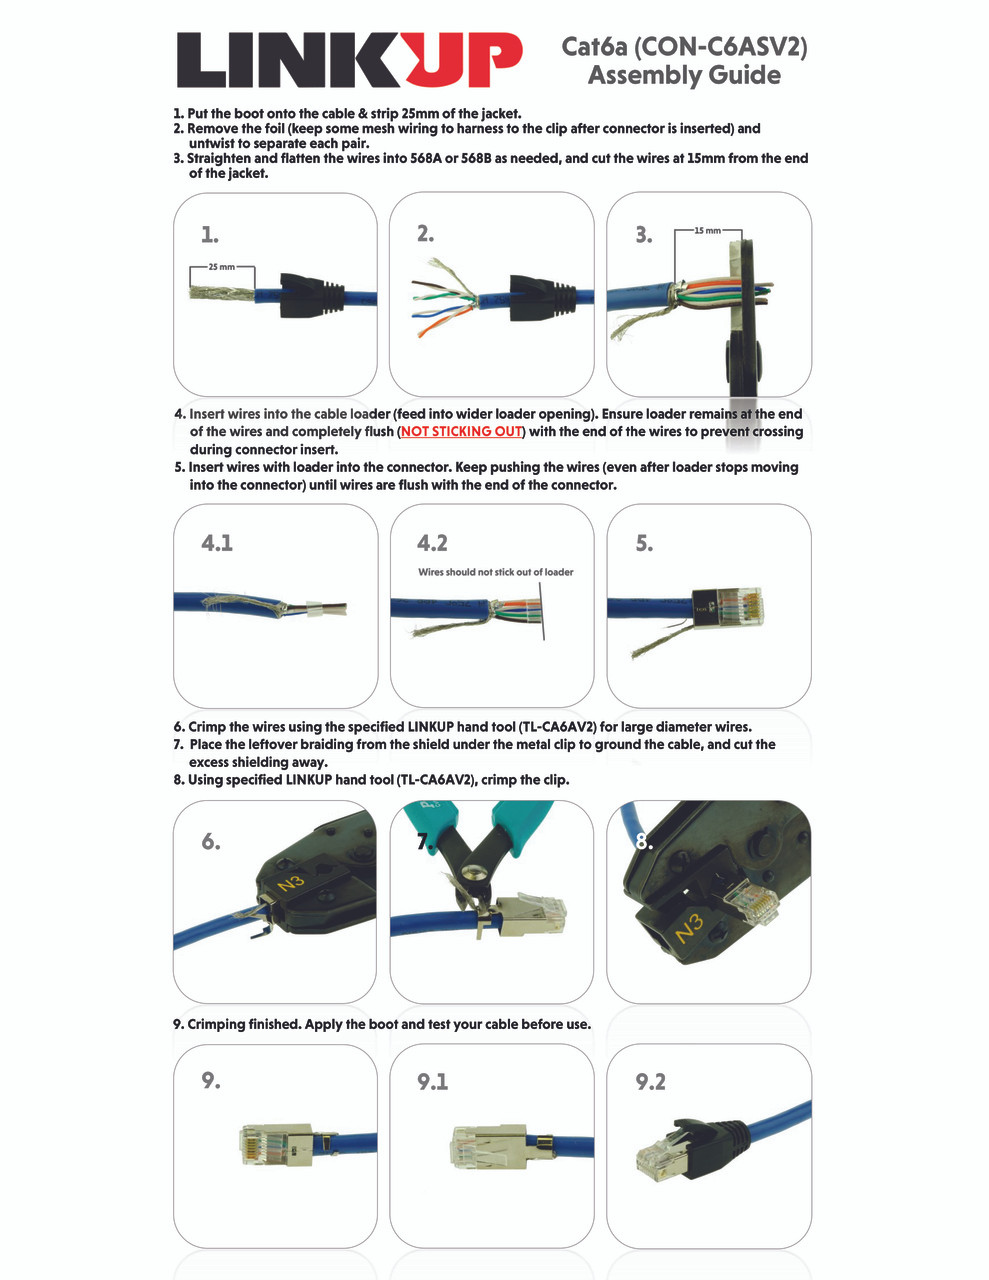 [linkup] rj45 connectors cat6a ethernet shielded modular plugs for large diameter wires (22awg) termination 10g stp gold plated [100 pack] cat 6 wiring color code cat6 connector work on a cat5e cable